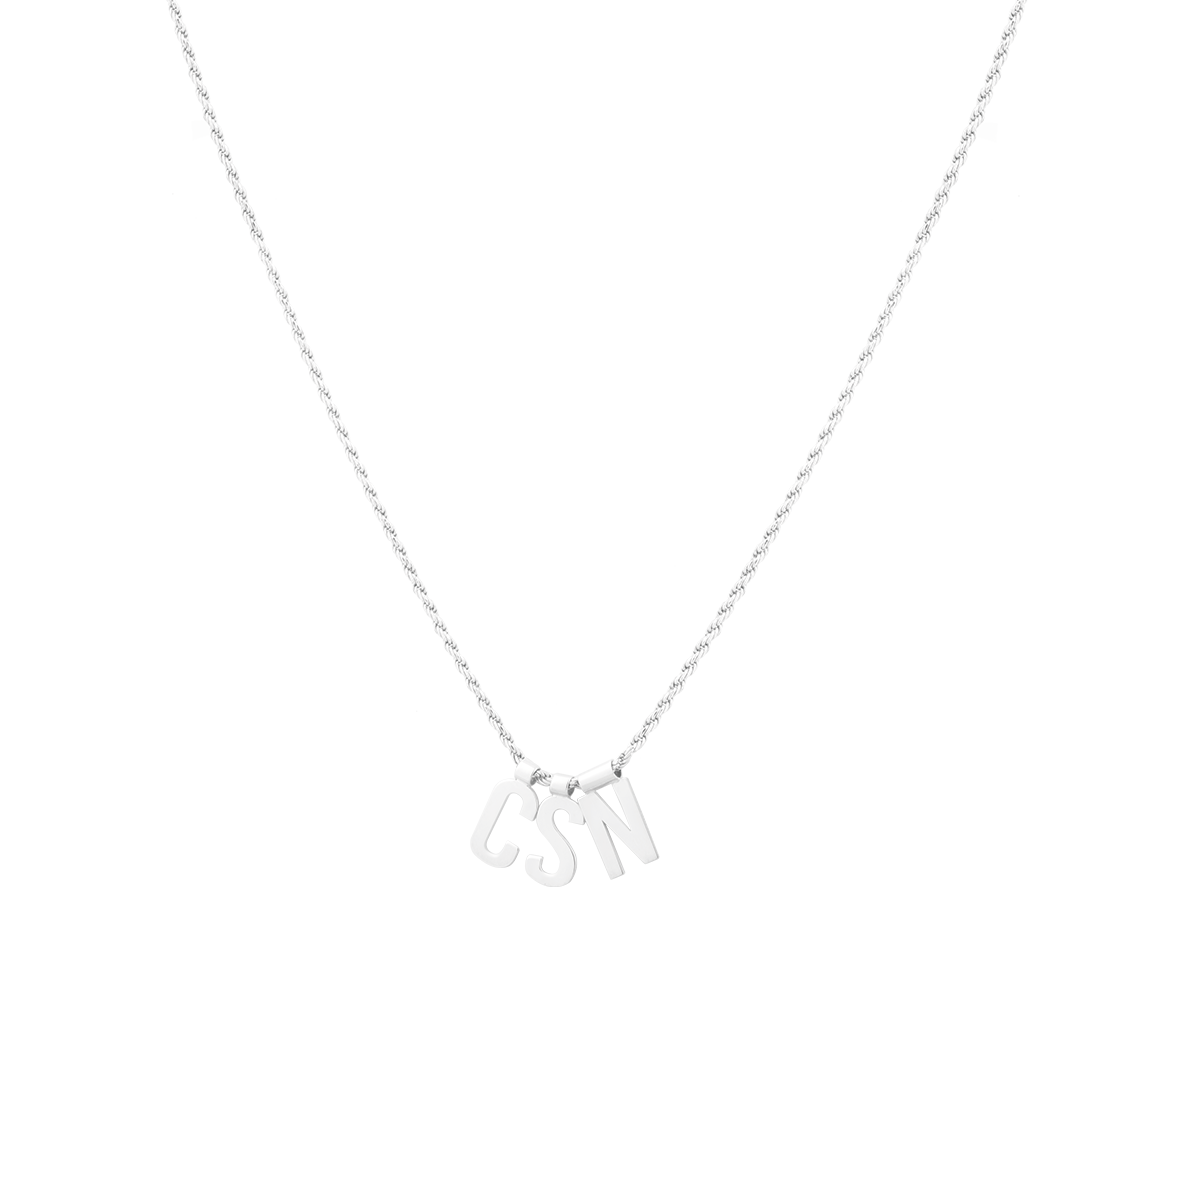 Ruby Rope Letter Necklace zilver CSN